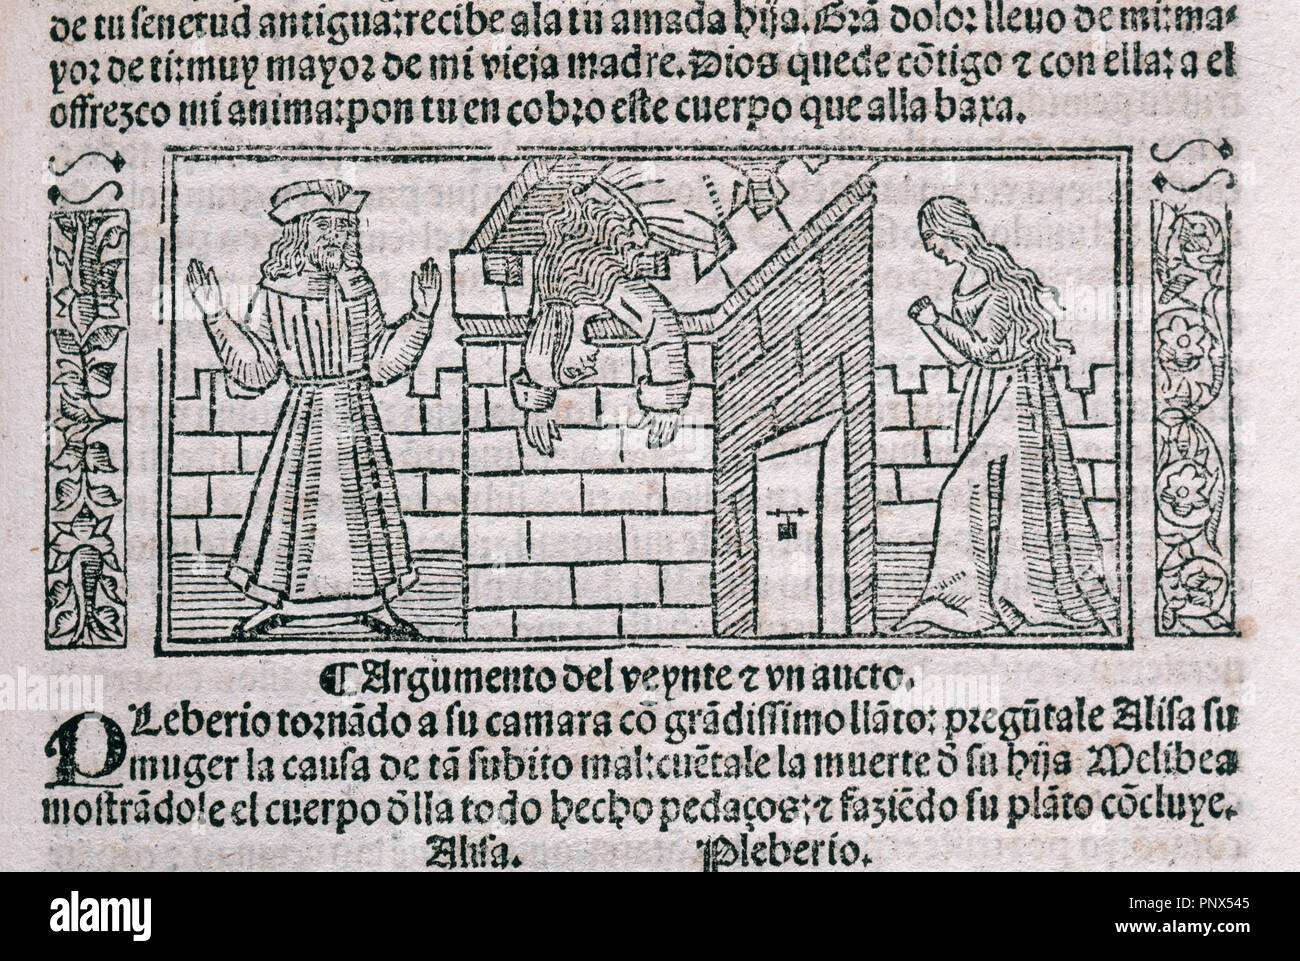 The Celestina or Tragicomedy of Calisto and Melibea (1499). By Fernando de Rojas (ca.1465-1541). Engraving depicting a start of act 21. Edition printed in Burgos, Spain, 1531. Library of Catalonia. Barcelona. Catalonia. Spain. - Stock Image